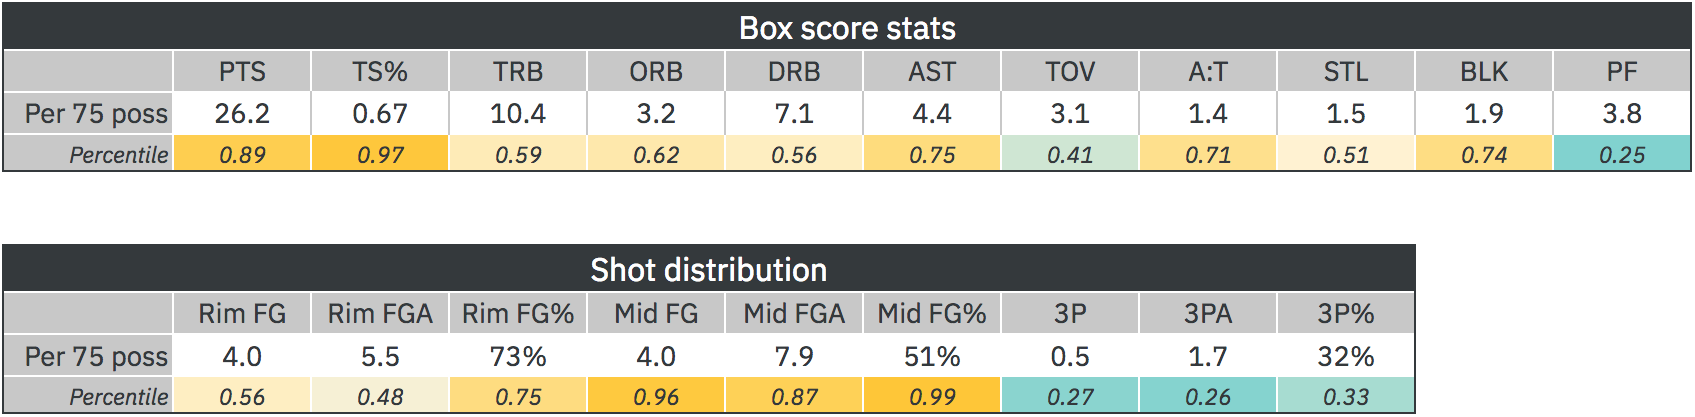 grant-williams-stats.png